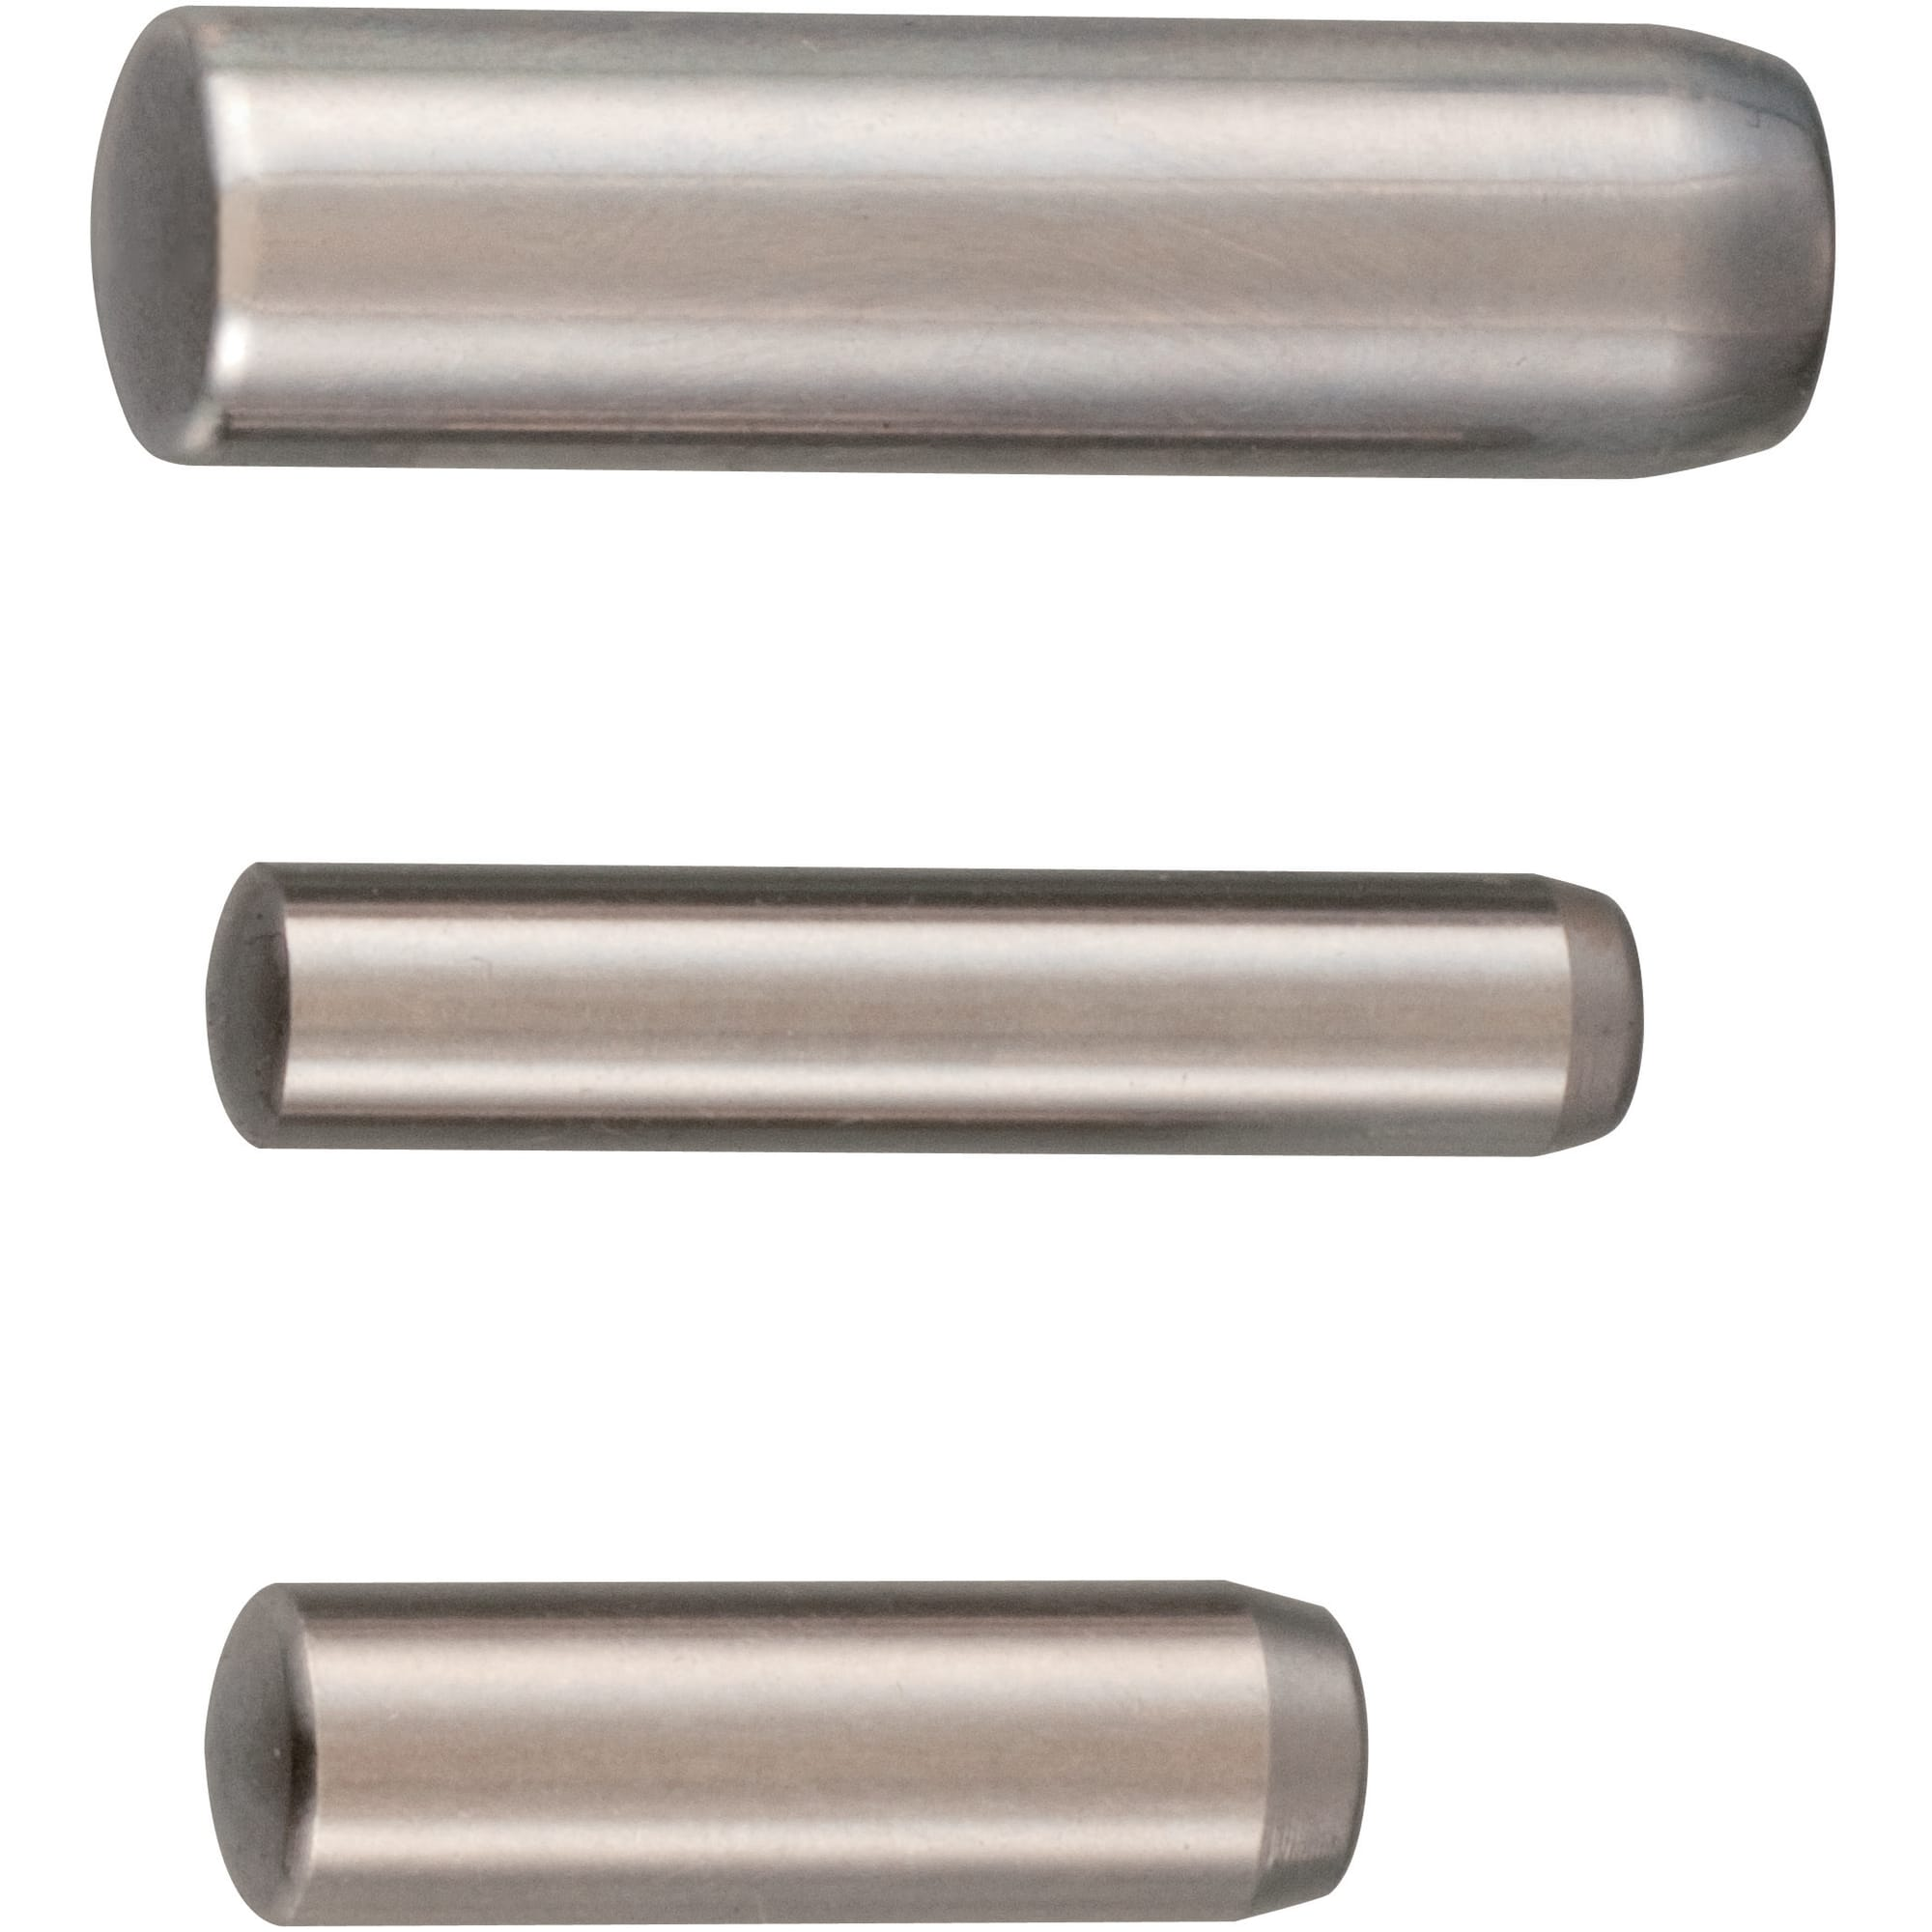 5 mm by 25 mm Antrader Dowel Pins 304 Stainless Steel Cylindrical Pin Locating Pin 50PCS